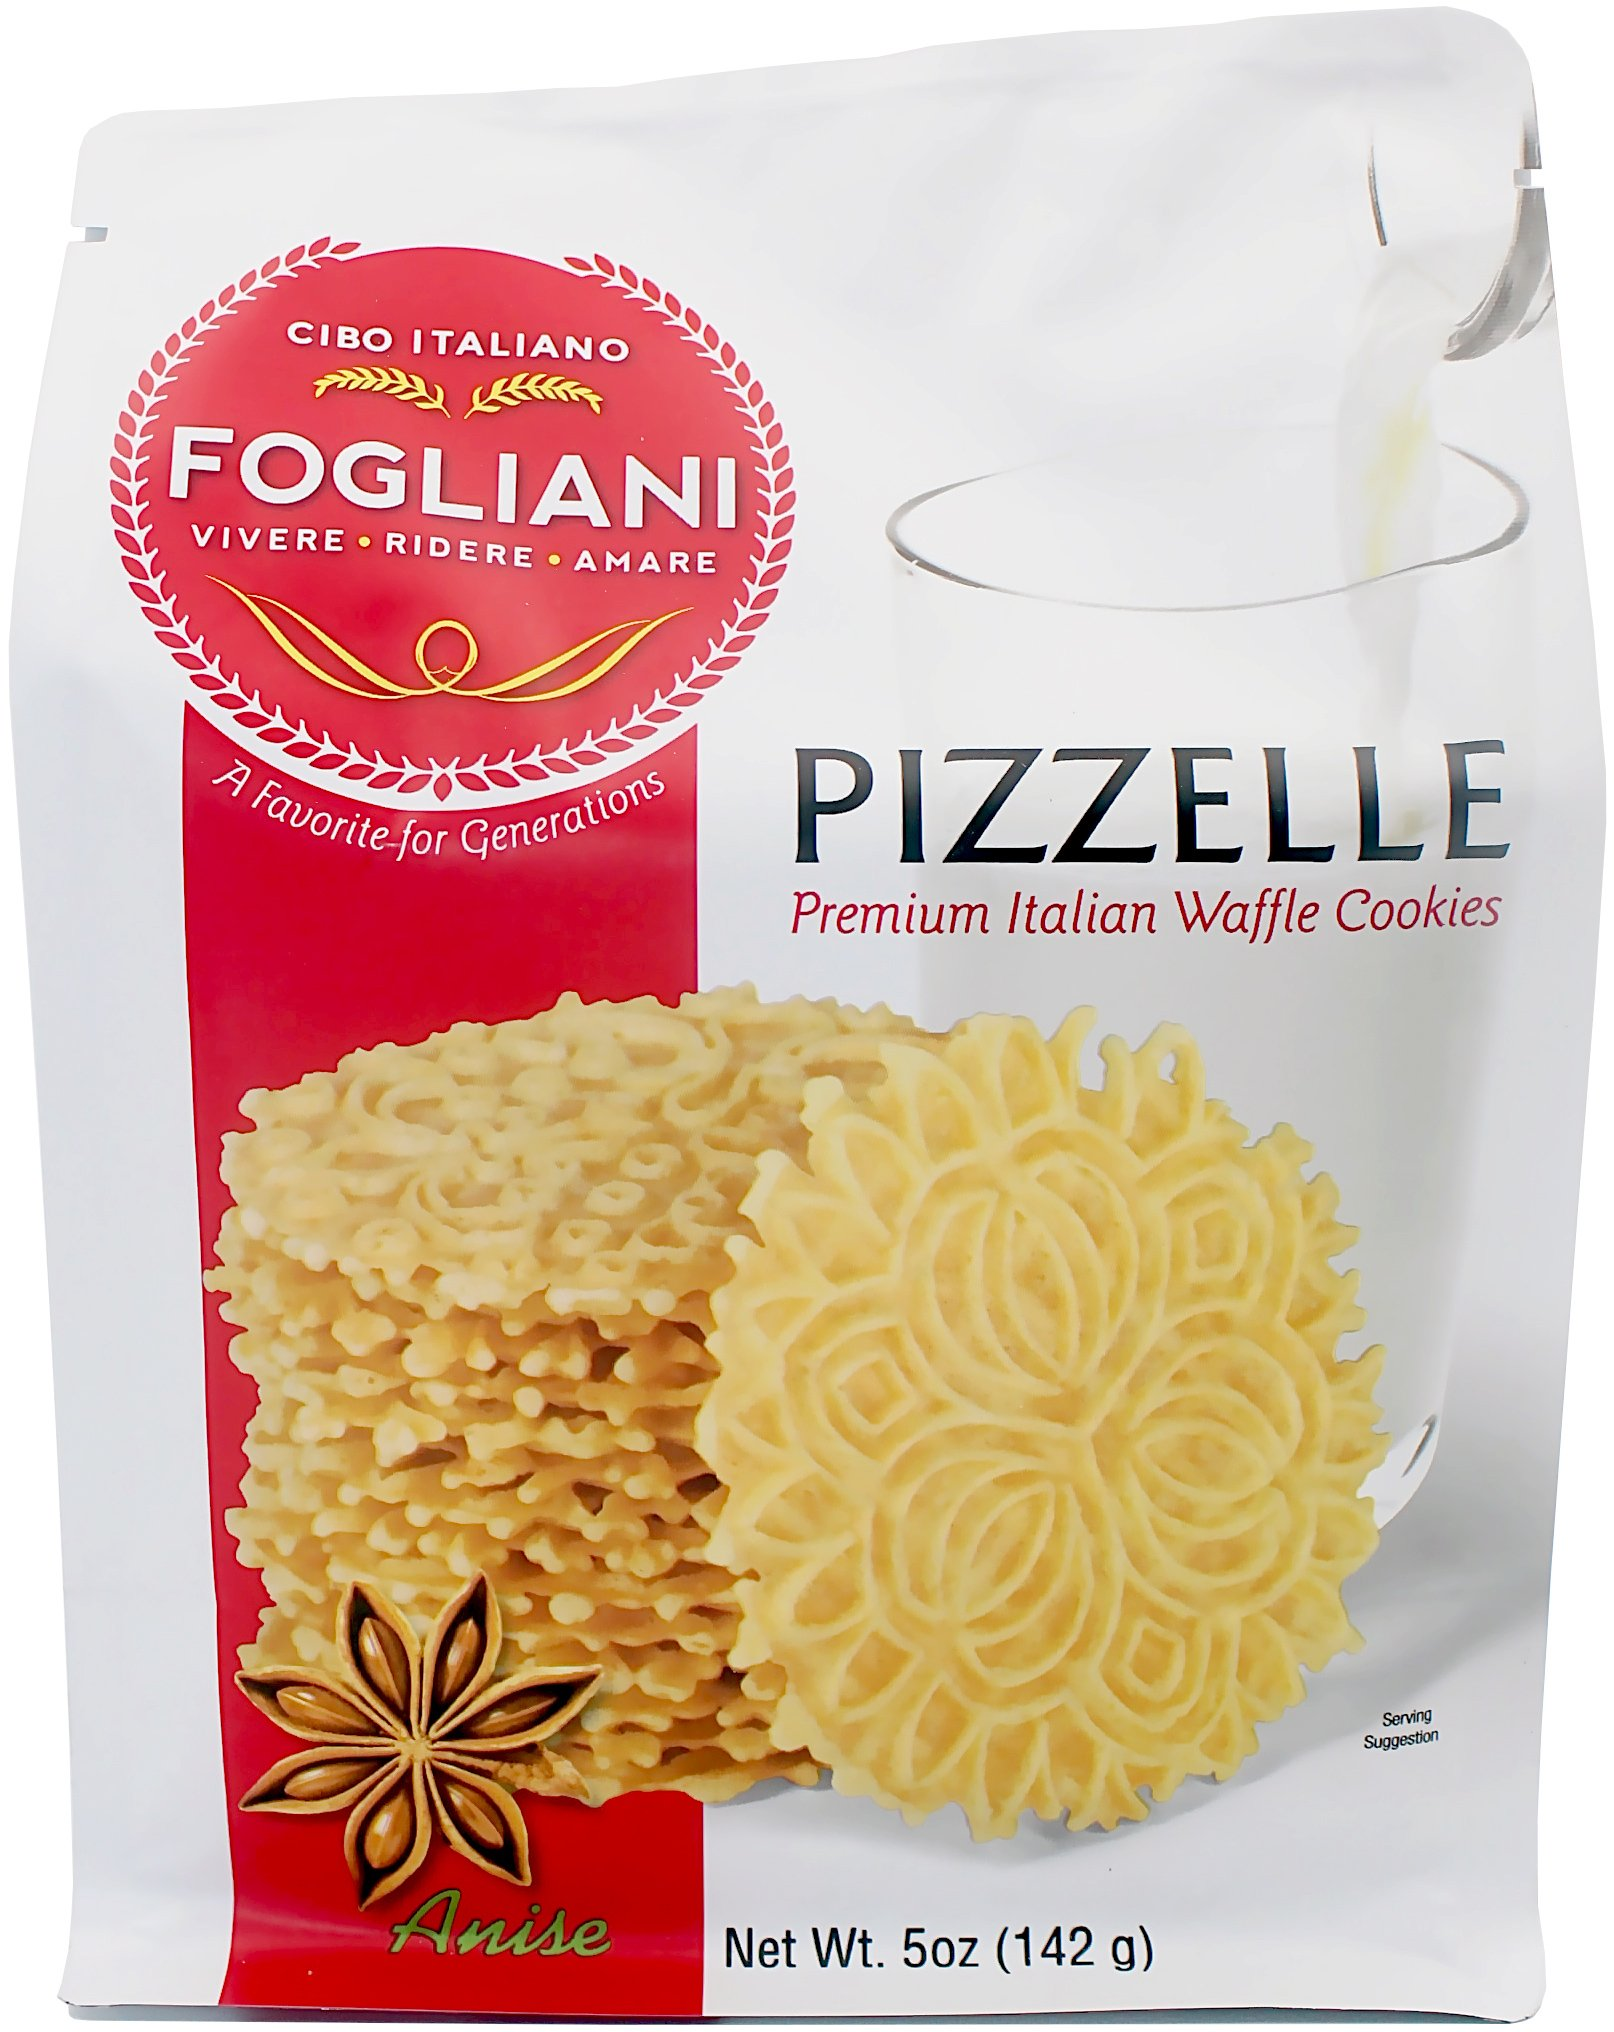 Fogliani Anise Pizzelle Waffle Cookies (Pack of 1)